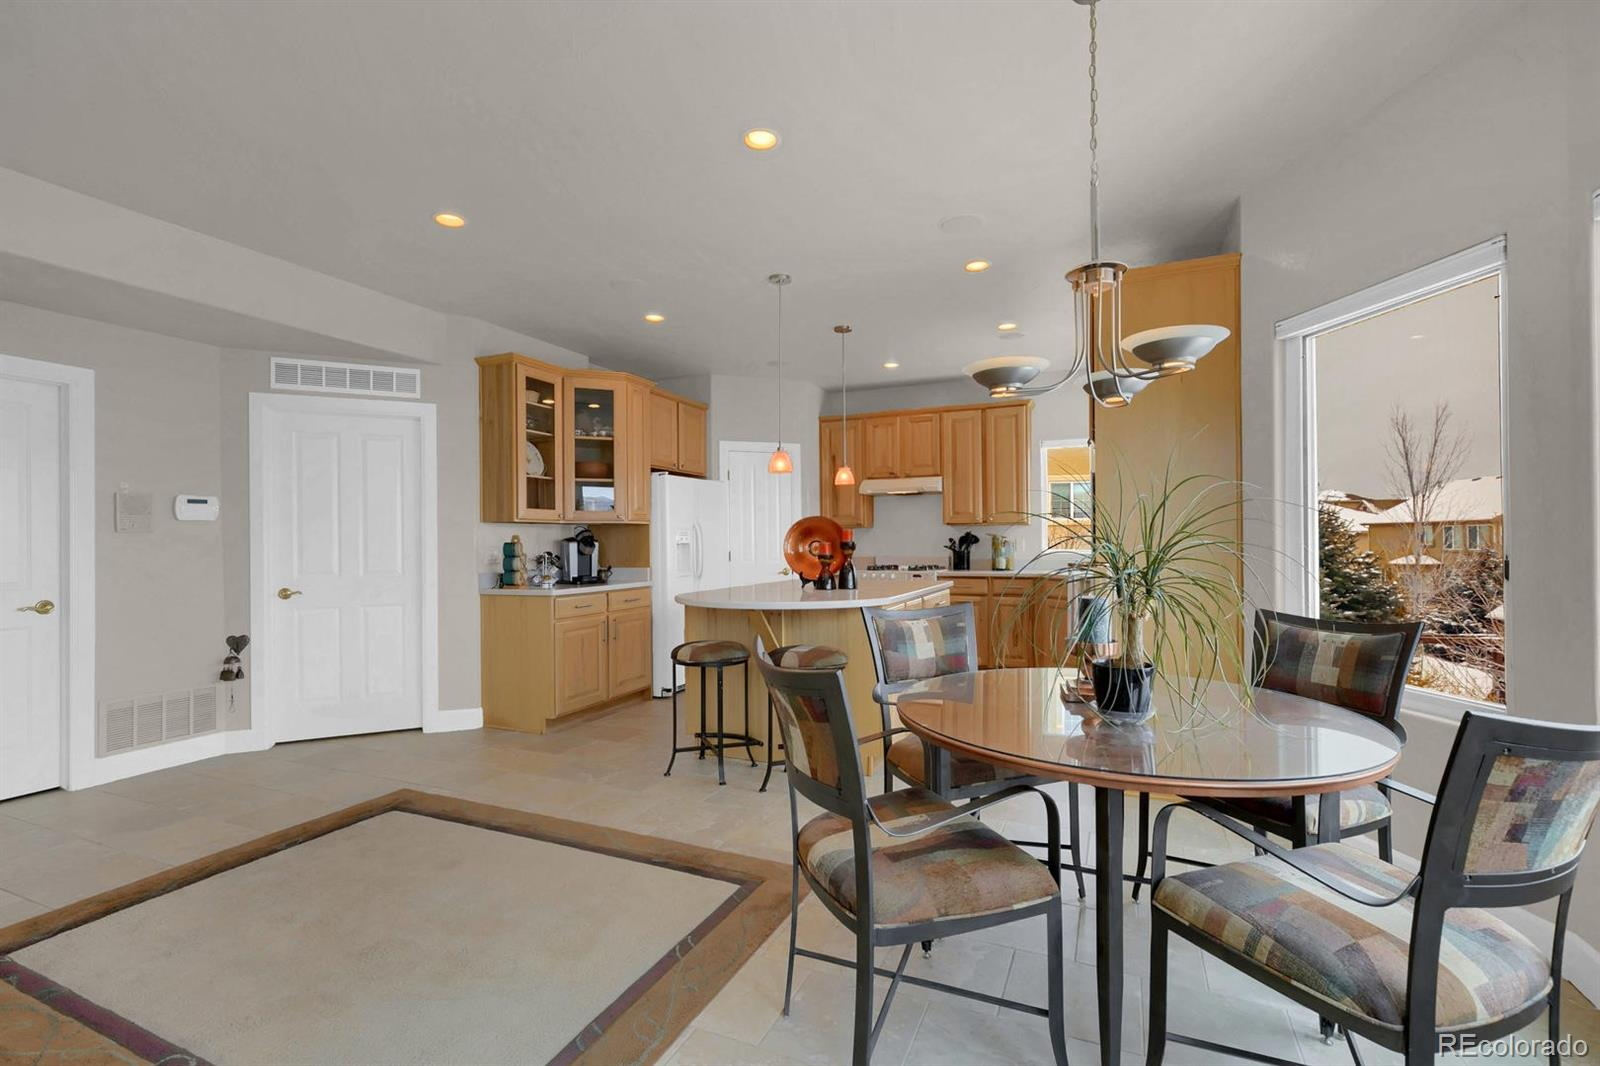 MLS# 5159811 - 11 - 207 Green Rock Place, Monument, CO 80132